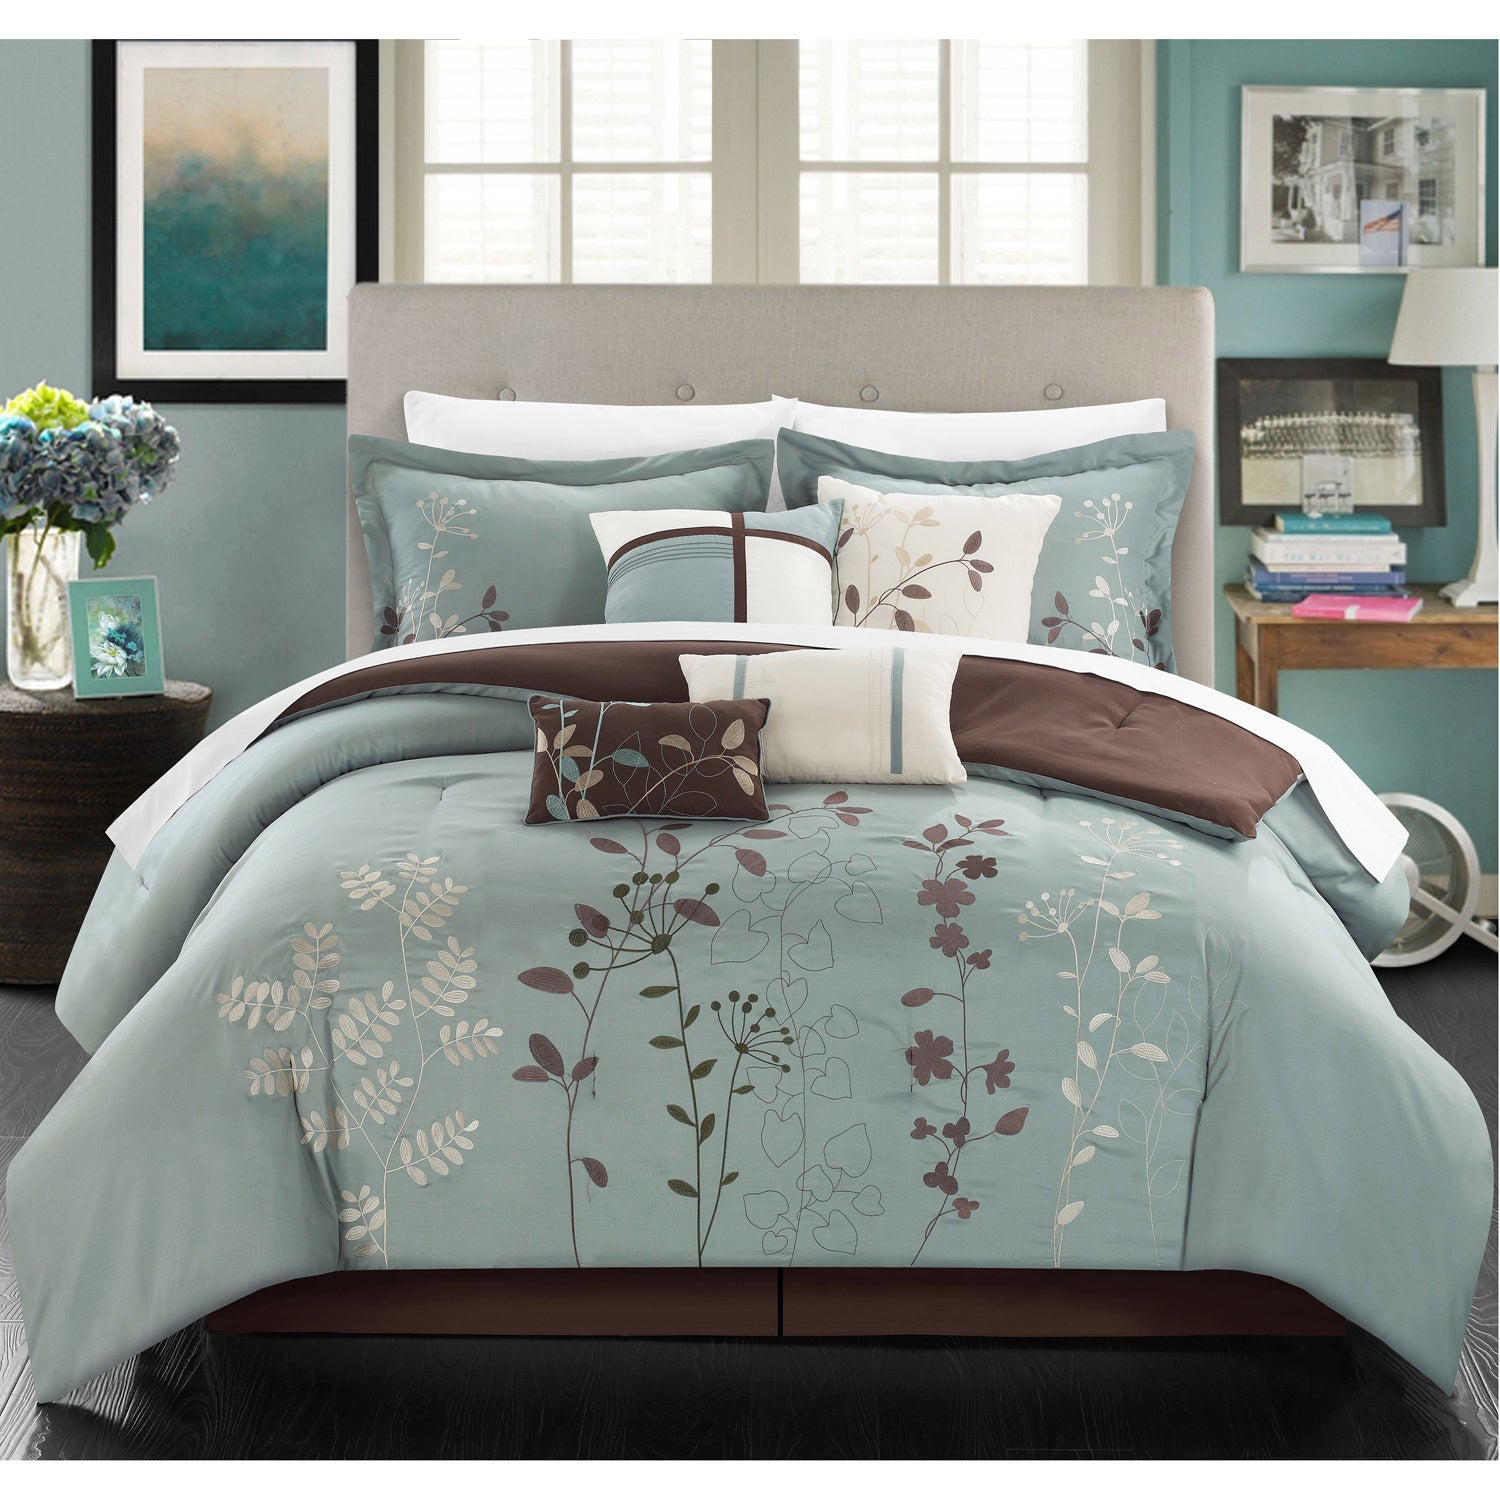 bed overstock piece lush decor bath product orders com shipping comforter reyna bedding on set free